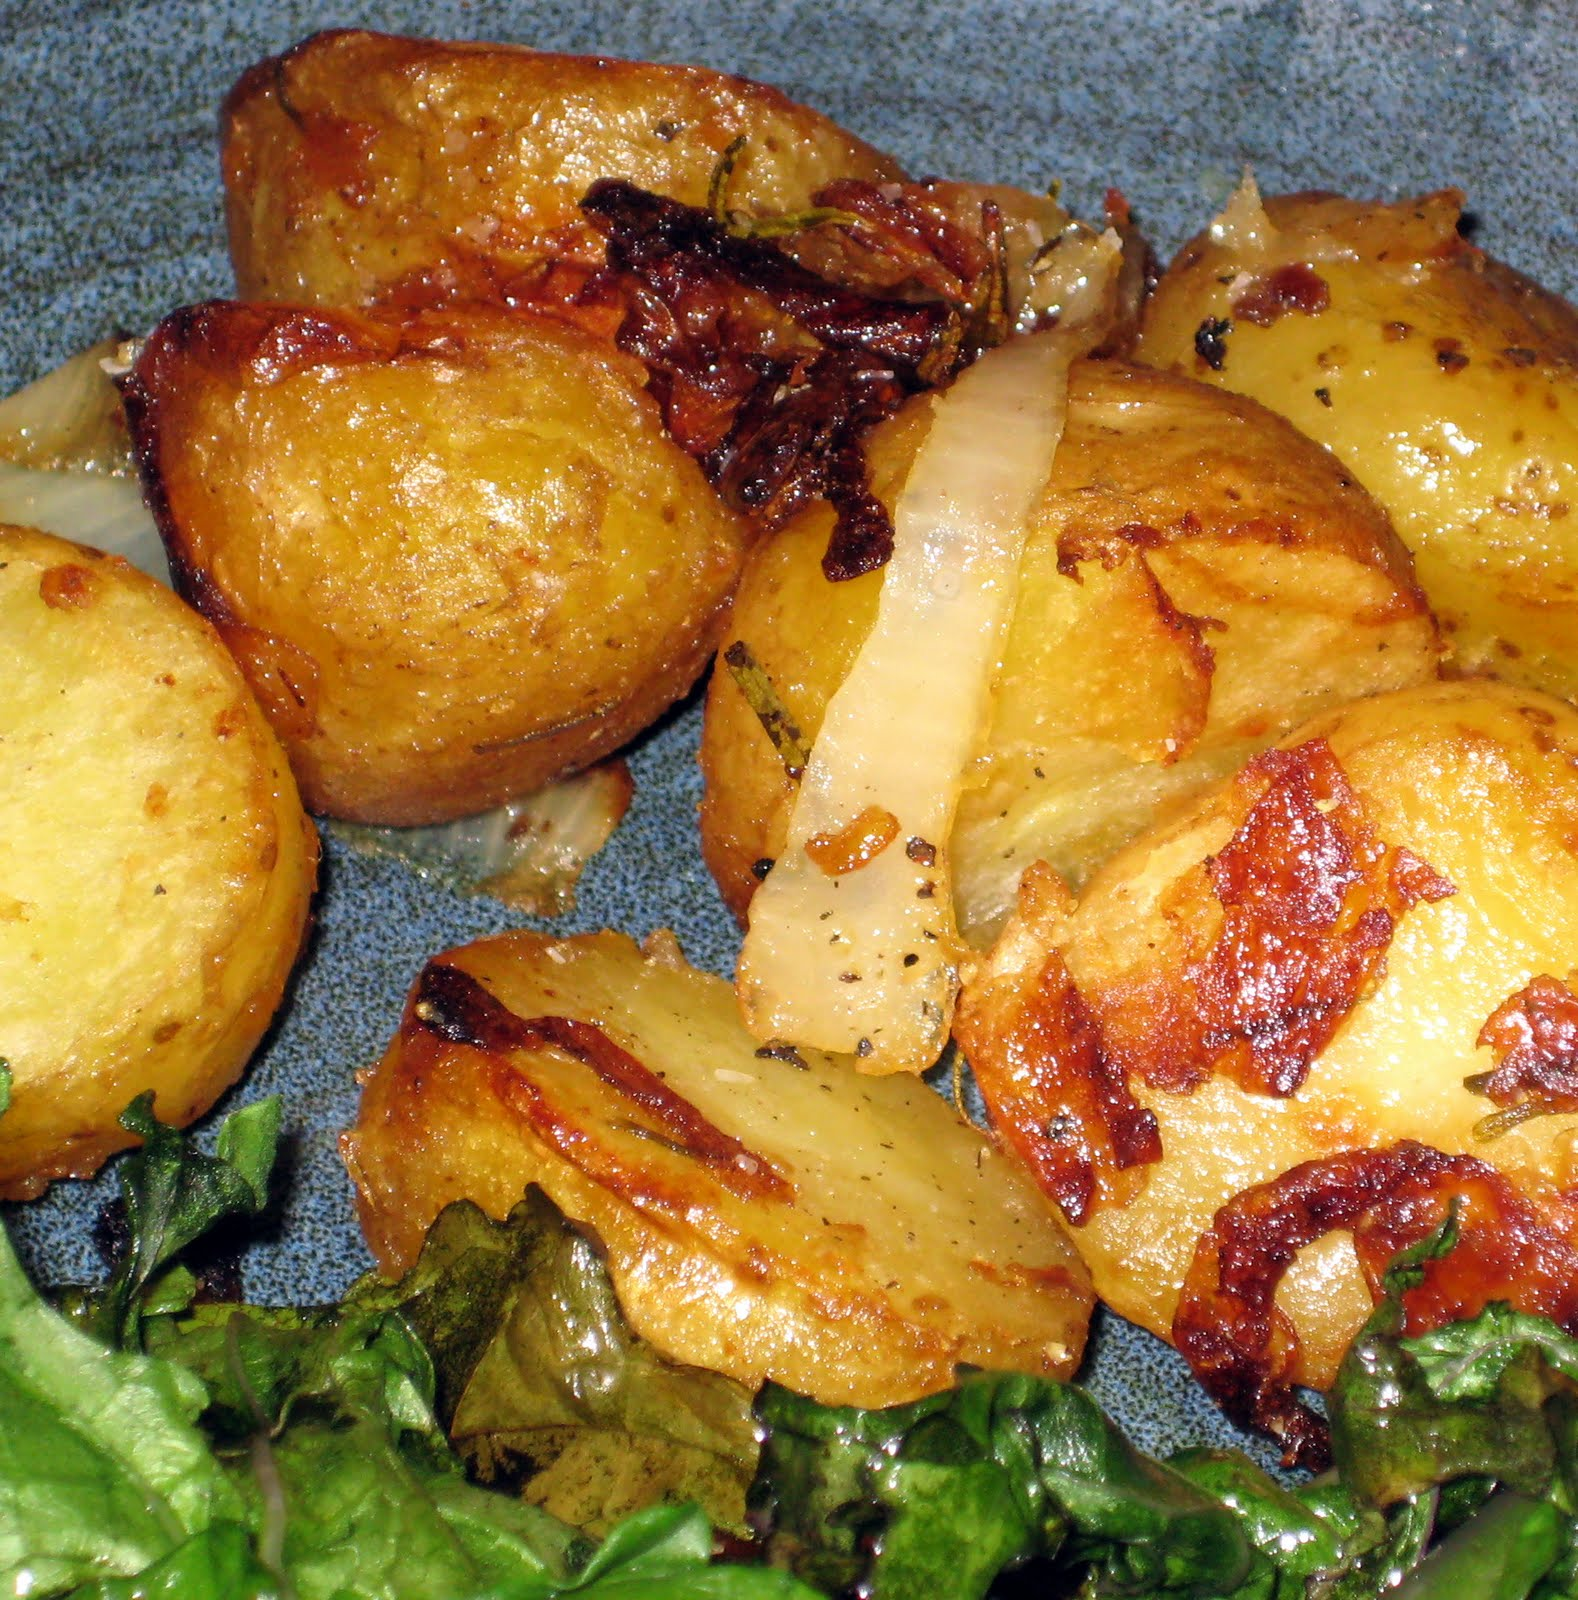 ... Food. Mostly Plants.: Roasted Rosemary Potatoes with Caramelized Onion